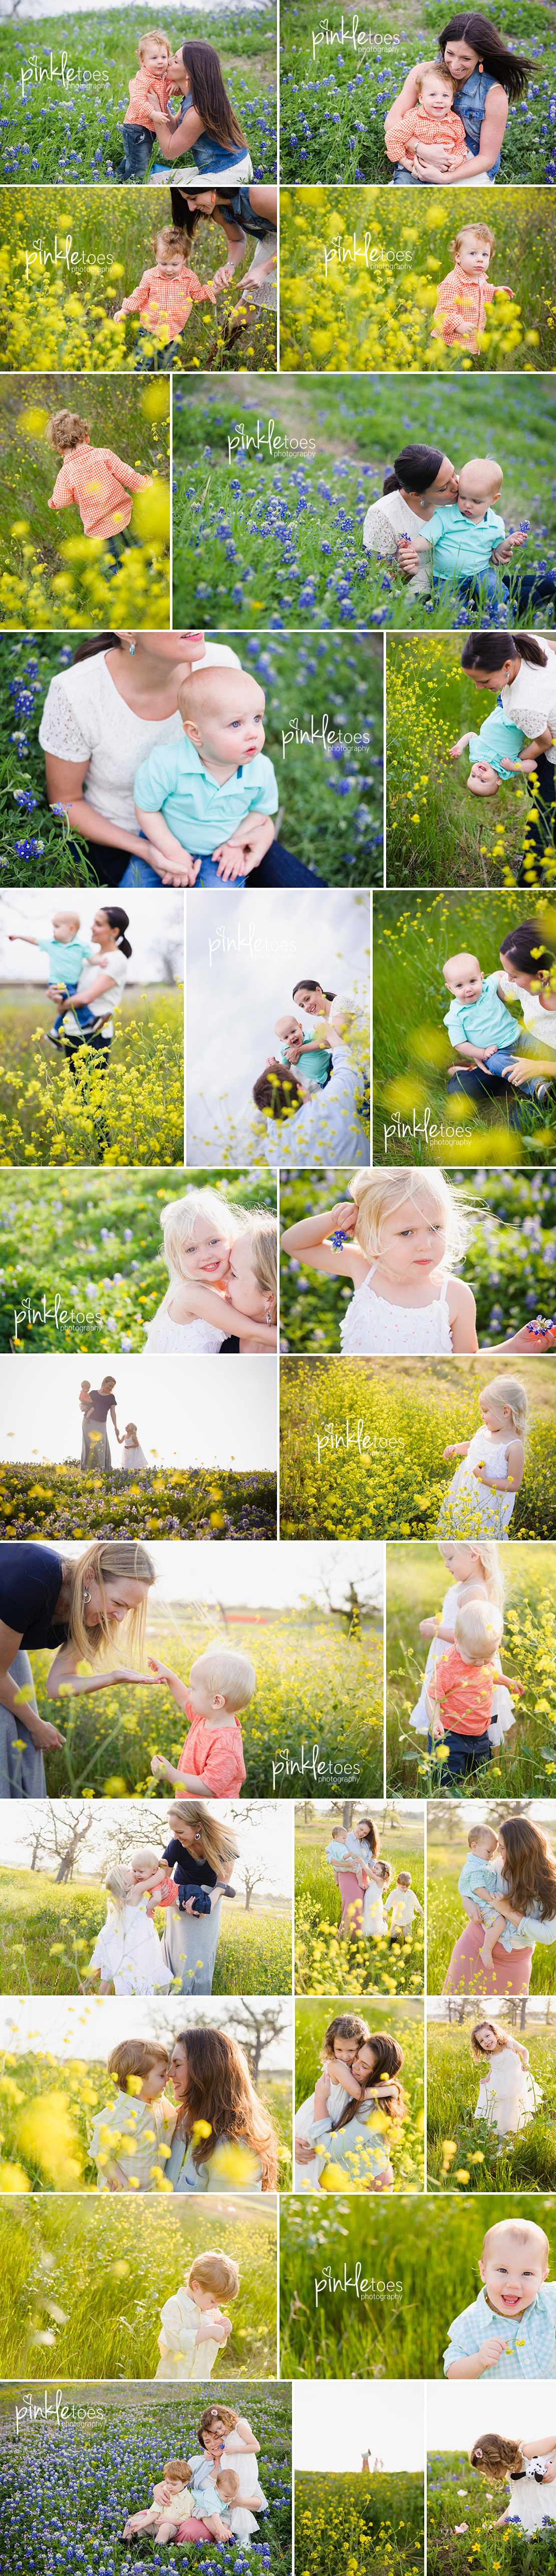 wildflower-mommy-child-baby-kids-austin-photographer-pinkle-toes-photography